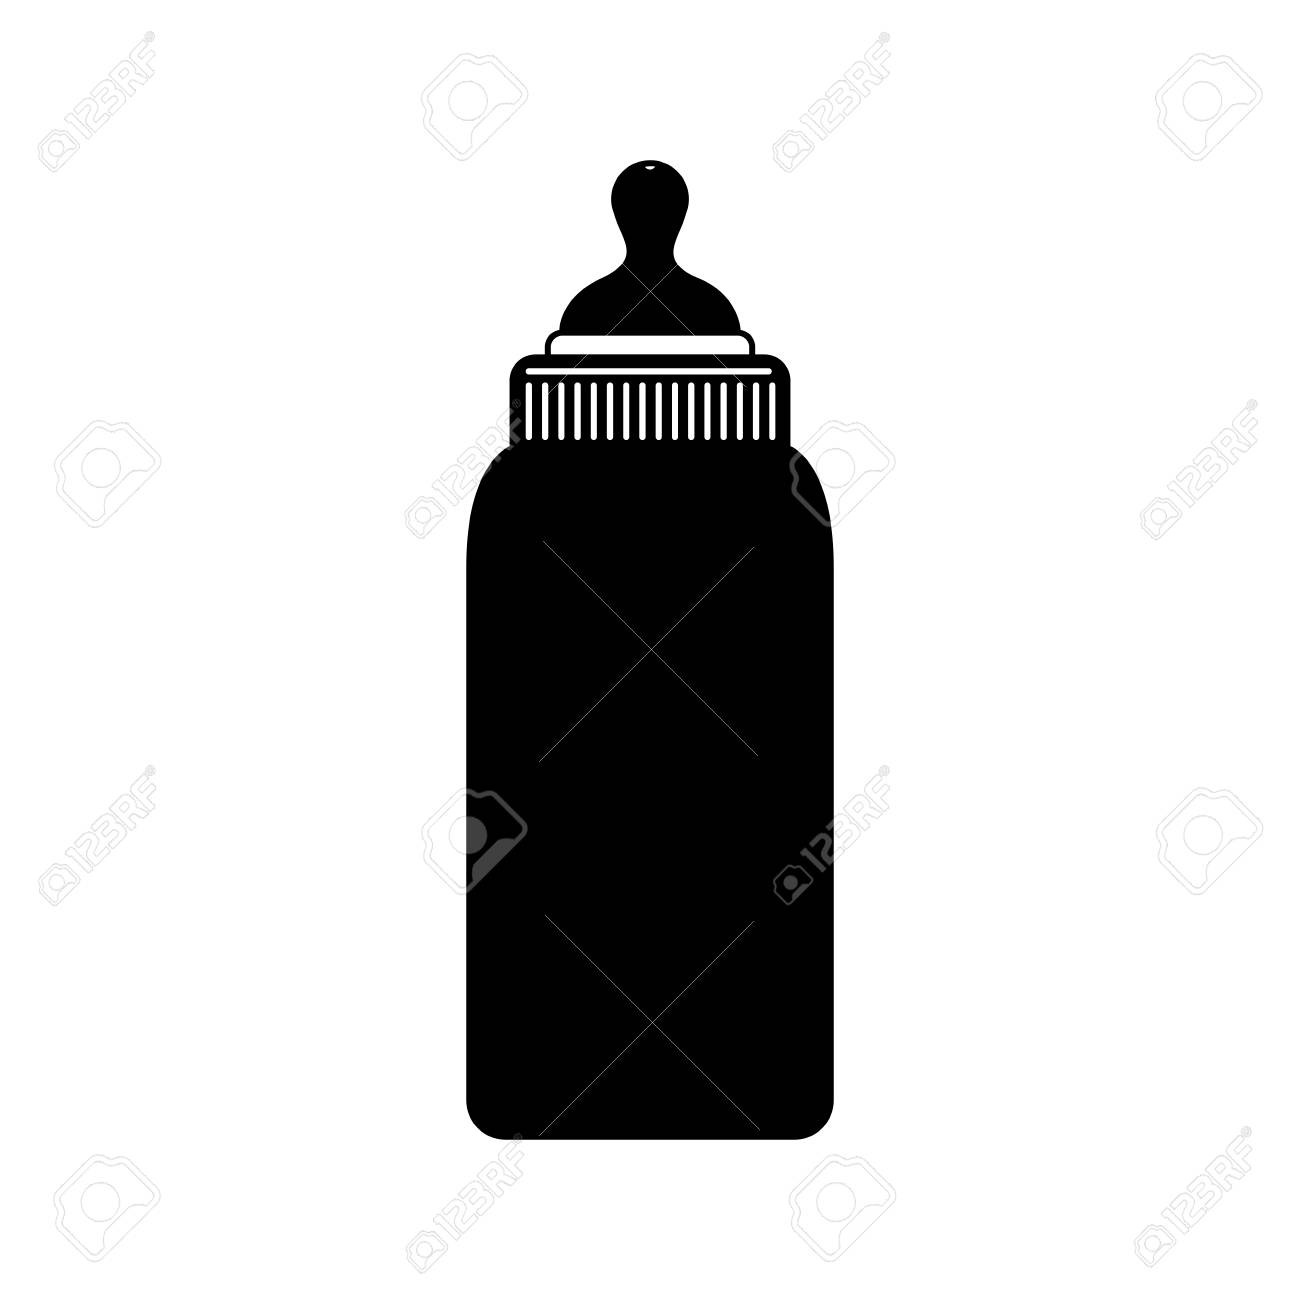 Black Silhouette Of Bottle Baby With Pacifier Vector Illustration